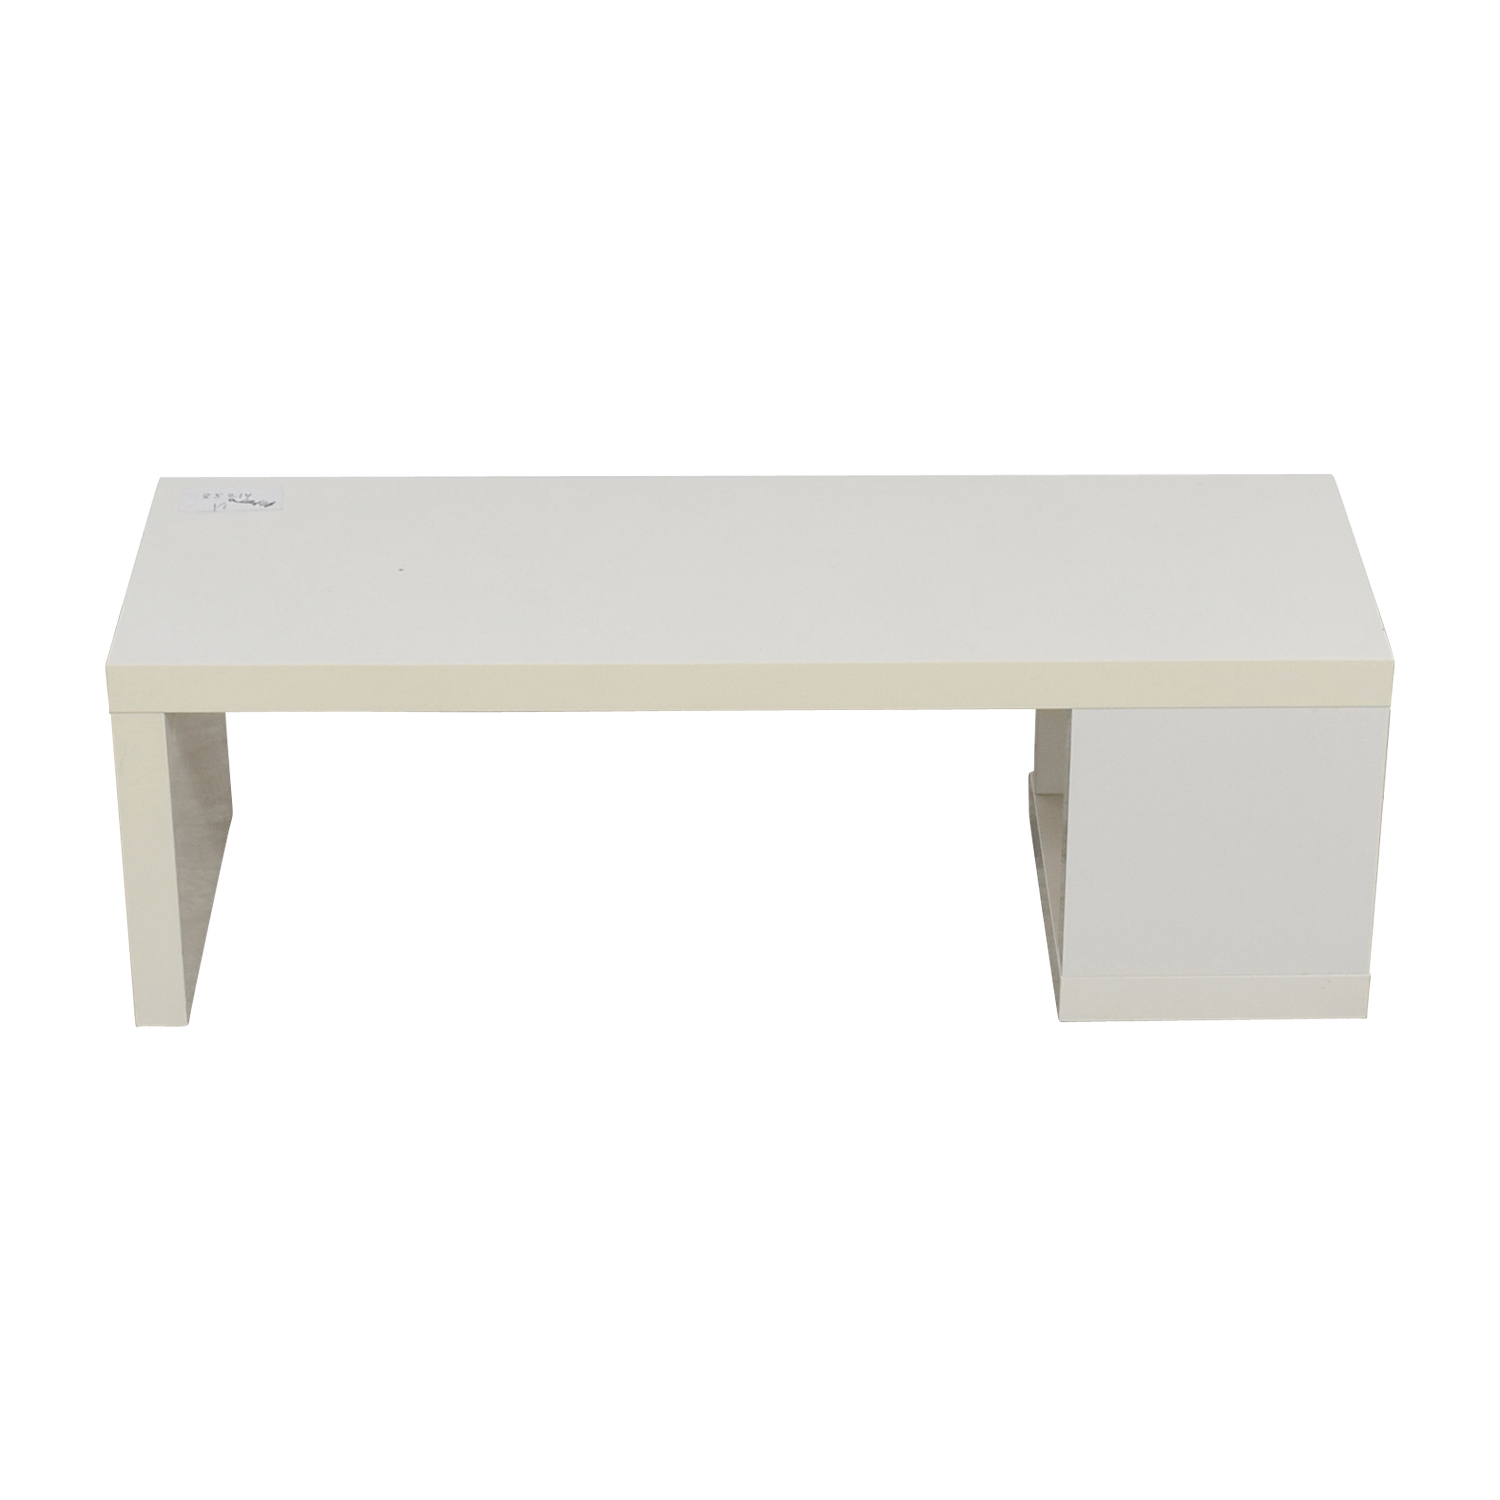 IKEA IKEA Lack TV Stand on sale